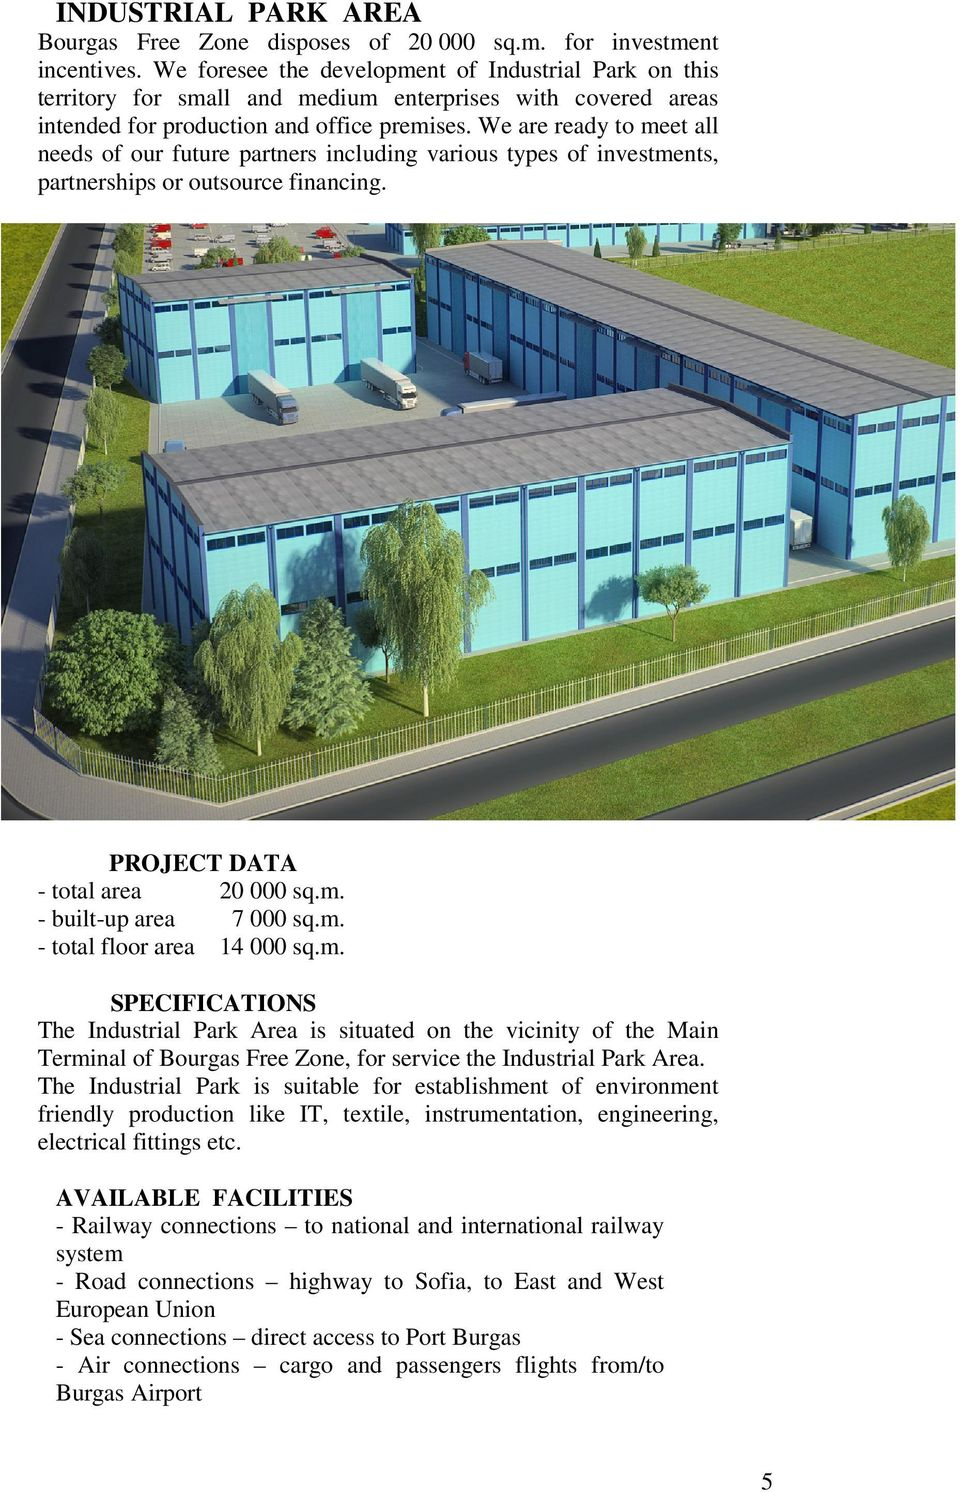 We are ready to meet all needs of our future partners including various types of investments, partnerships or outsource financing. PROJECT DATA - total area 20 000 sq.m. - built-up area 7 000 sq.m. - total floor area 14 000 sq.